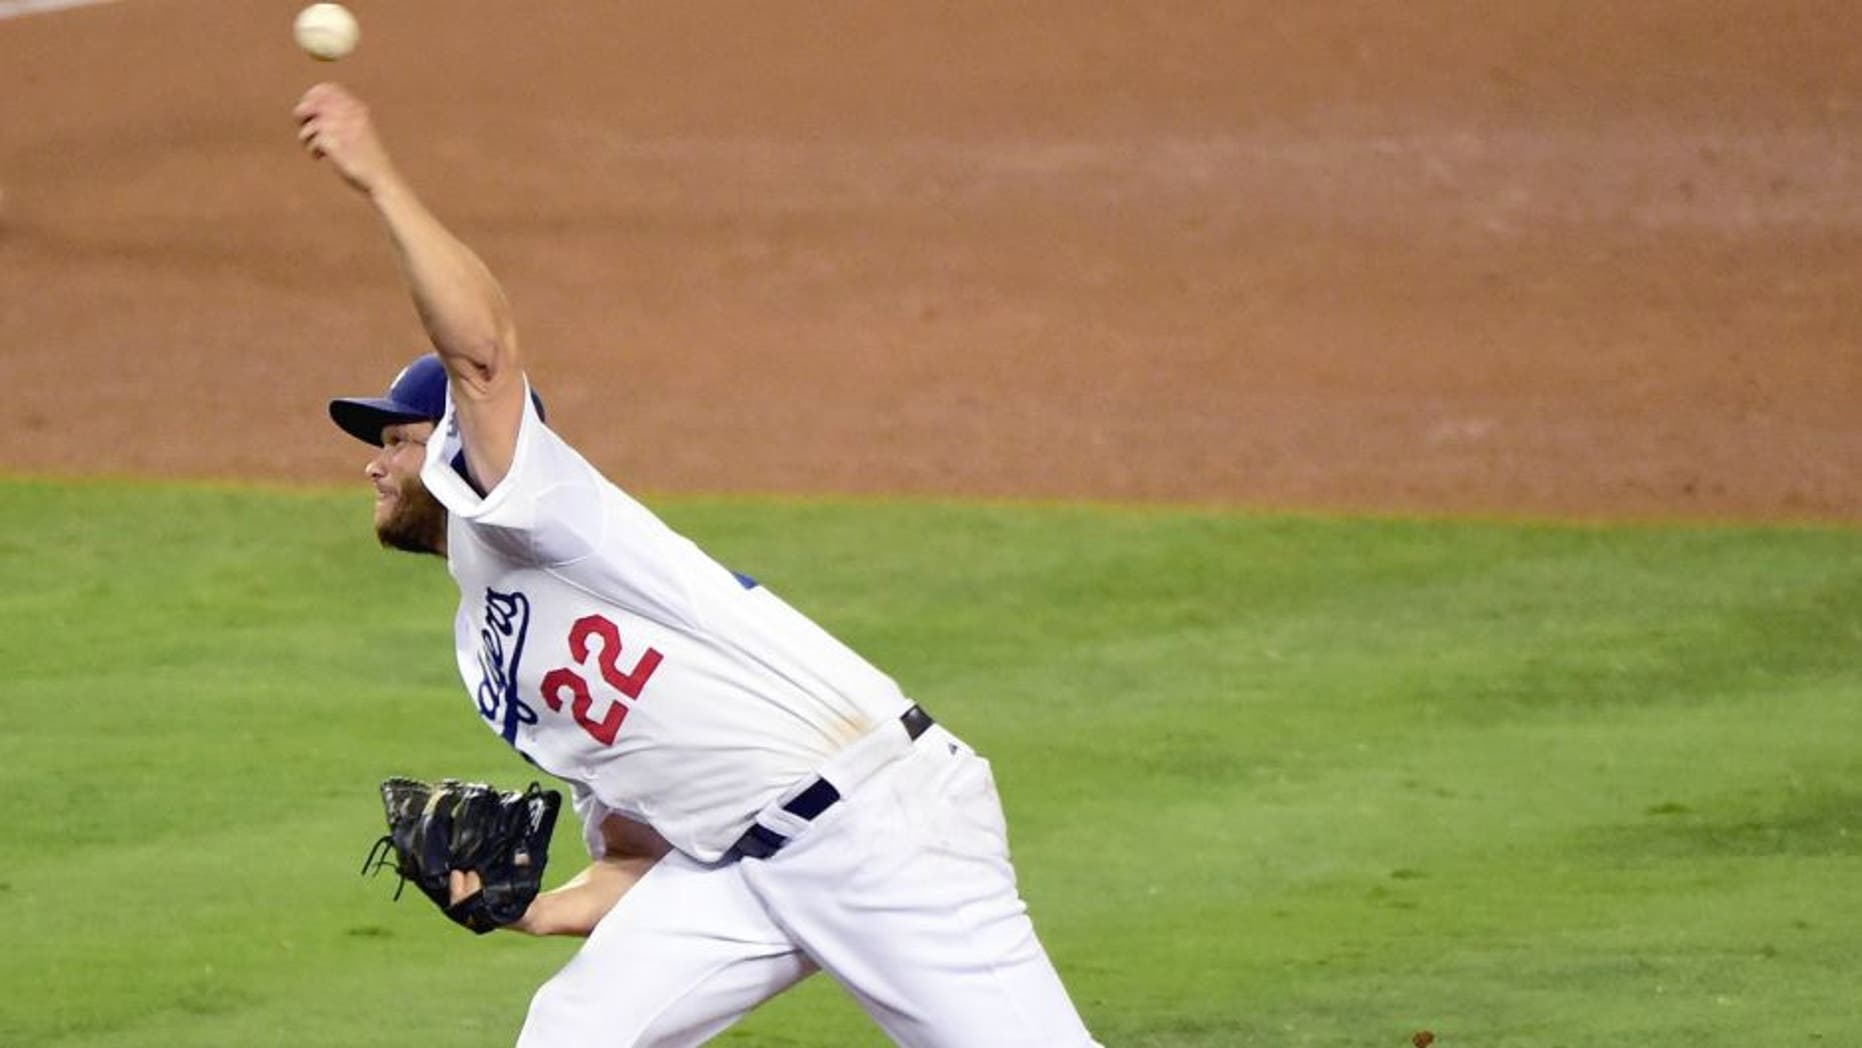 LOS ANGELES, CA - SEPTEMBER 02: Clayton Kershaw #22 of the Los Angeles Dodgers pitches in the ninth inning to a complete game 2-1 victory over the San Francisco Giants at Dodger Stadium on September 2, 2015 in Los Angeles, California. (Photo by Harry How/Getty Images)